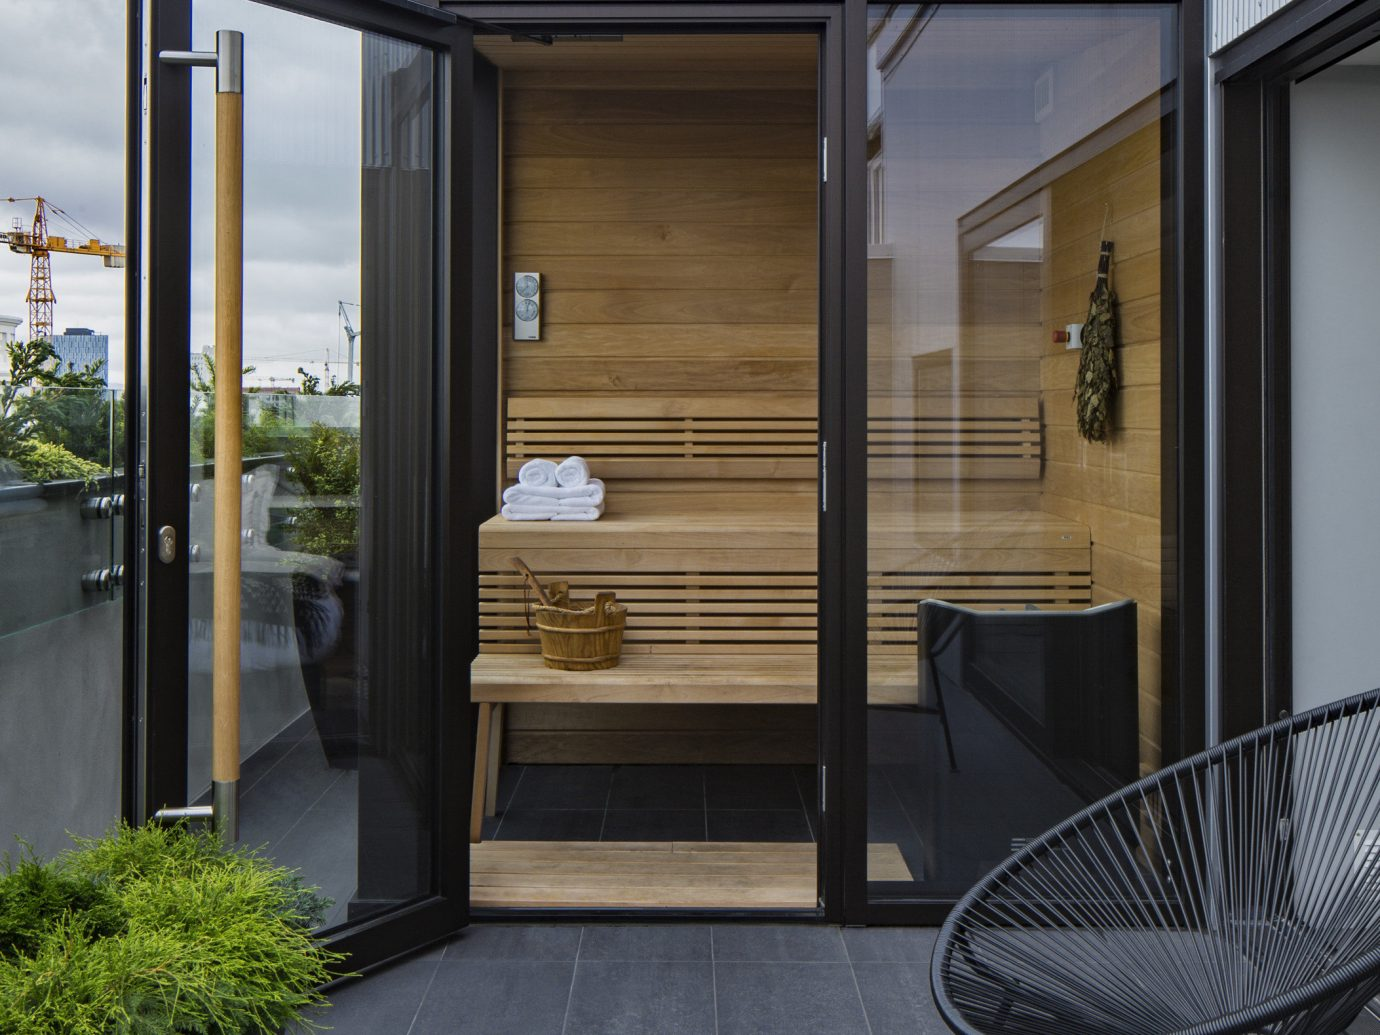 Boutique Hotels Hotels Iceland Reykjavík house door home window facade outdoor structure